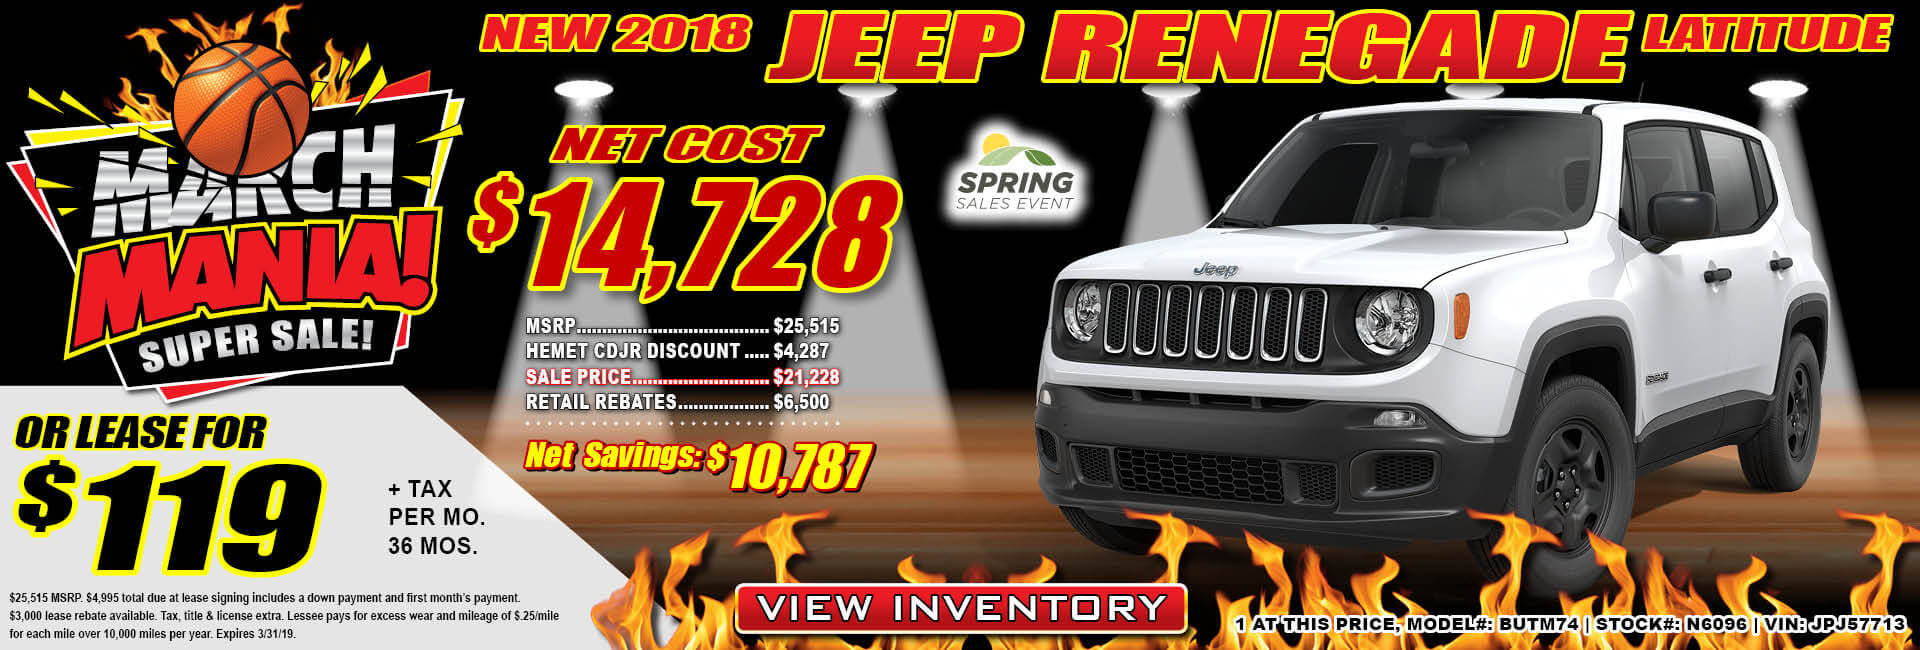 Jeep Renegade $119 Lease